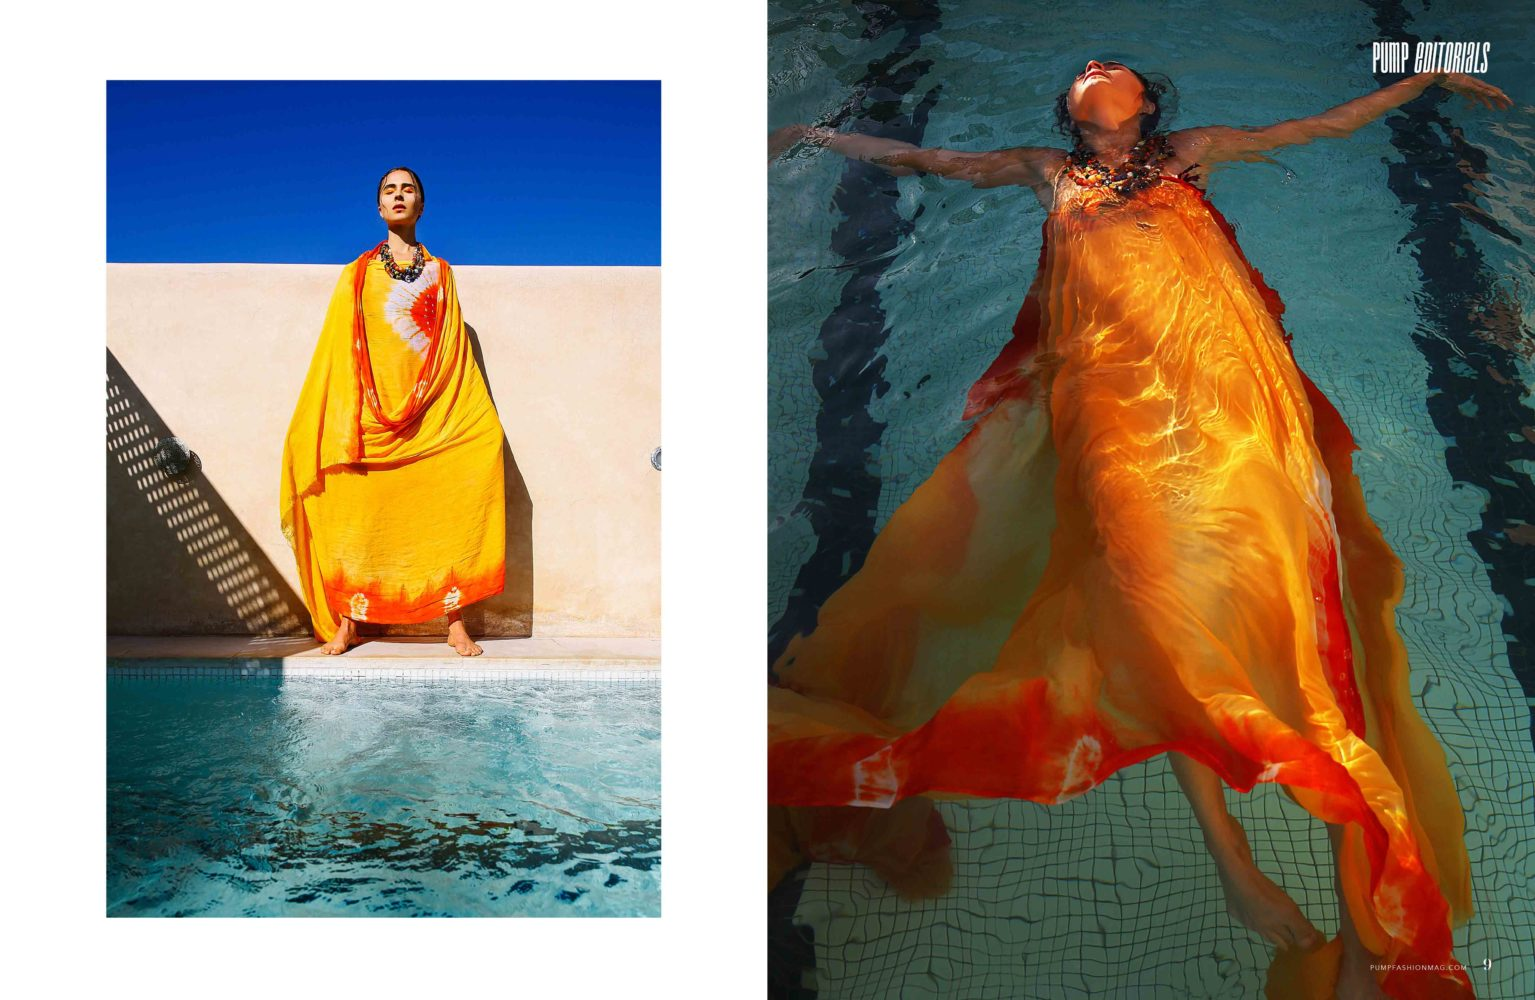 PUMP Summer Style Guide Vol1 August 20183 - photographer - marrakech - inmakko-marakasso